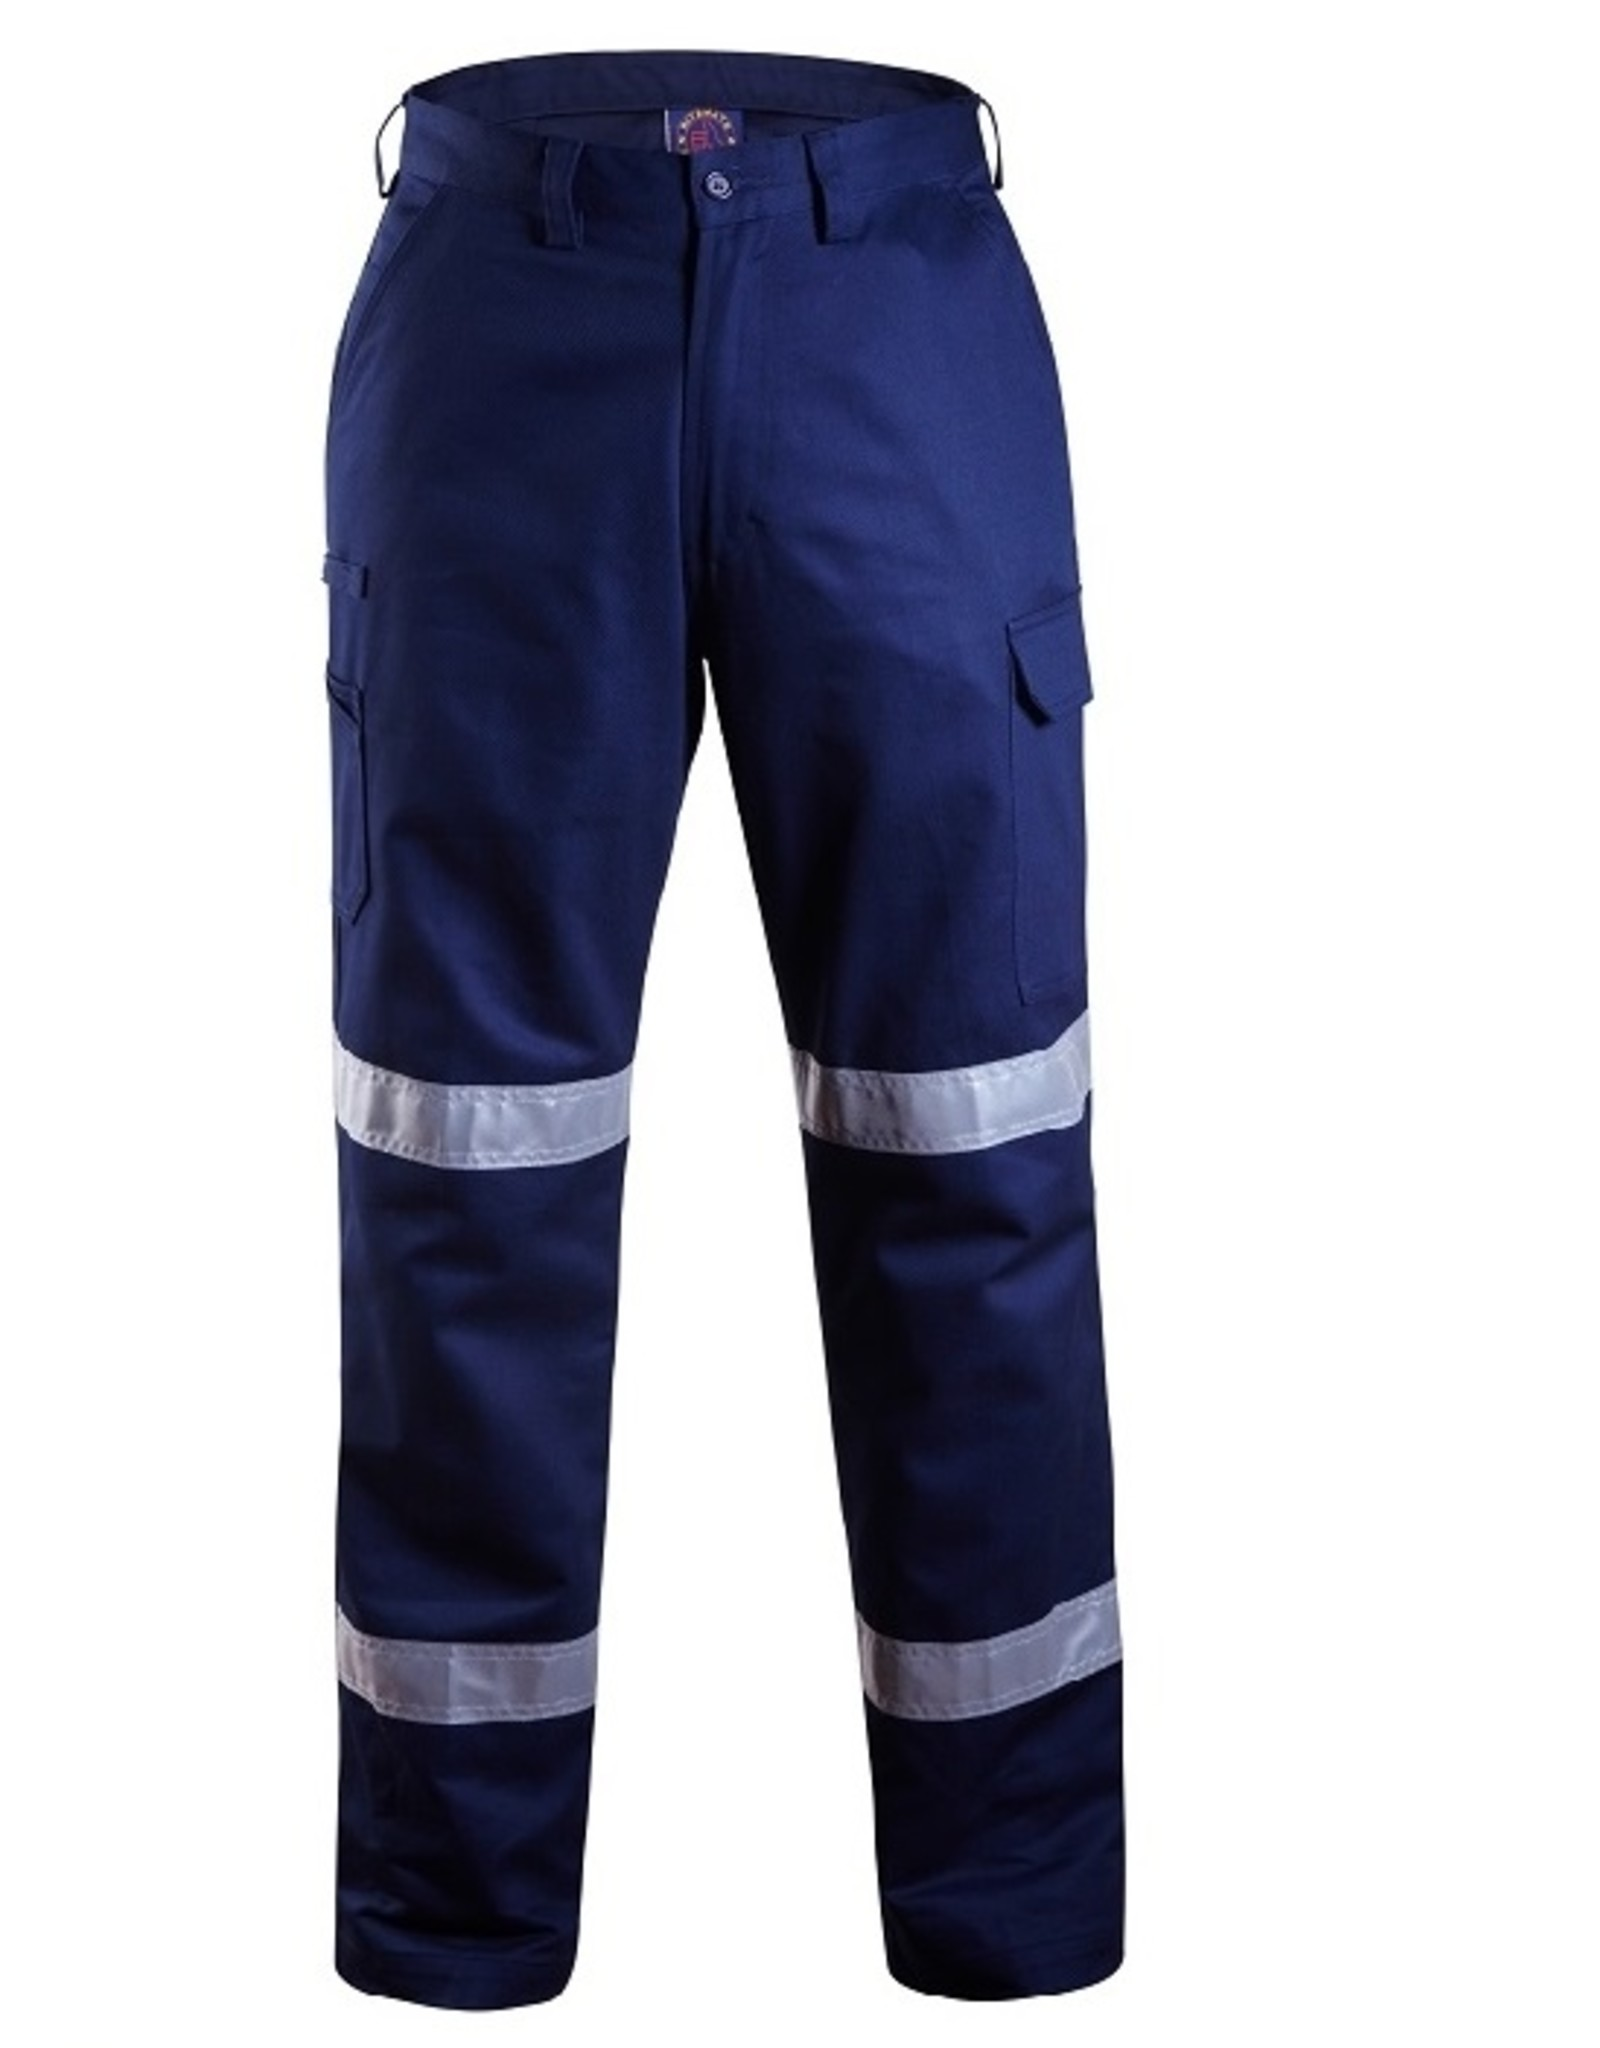 Ritemate Ritemate RM1004R Cargo Trouser 3M Reflective Taped